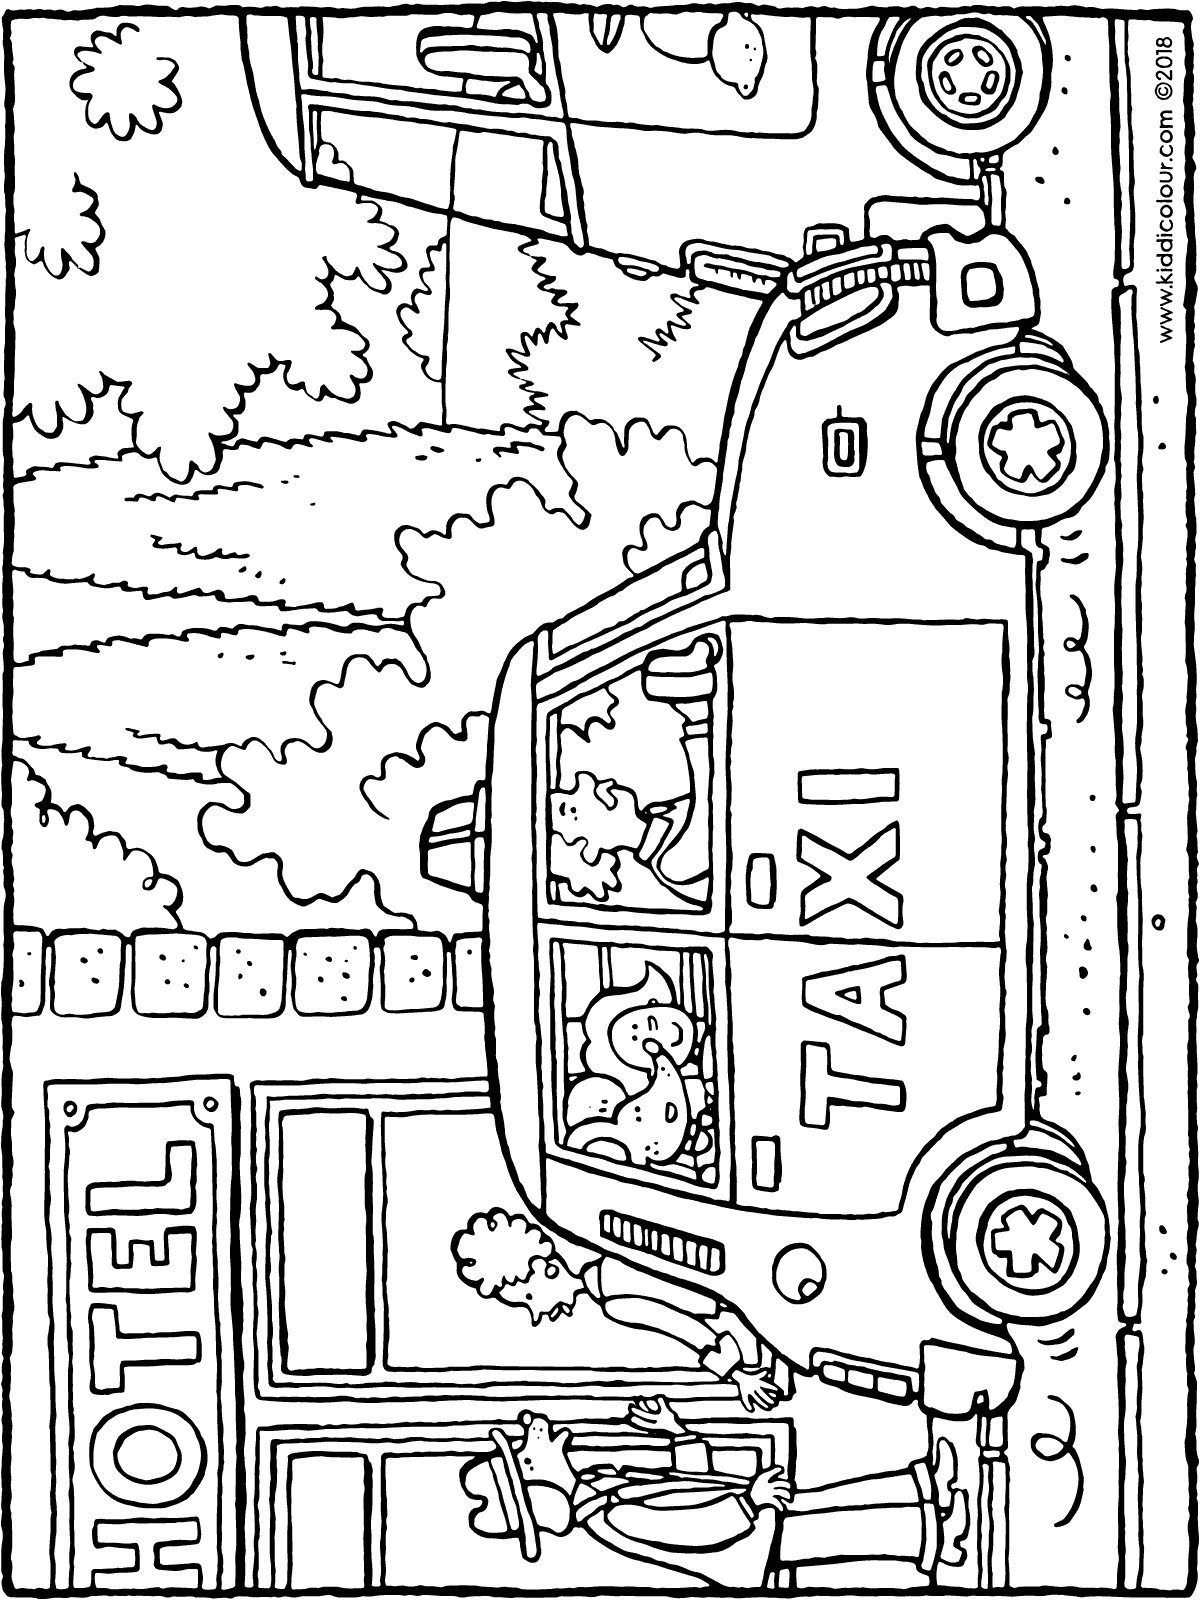 Emma and Thomas in a taxi colouring page drawing picture 01H